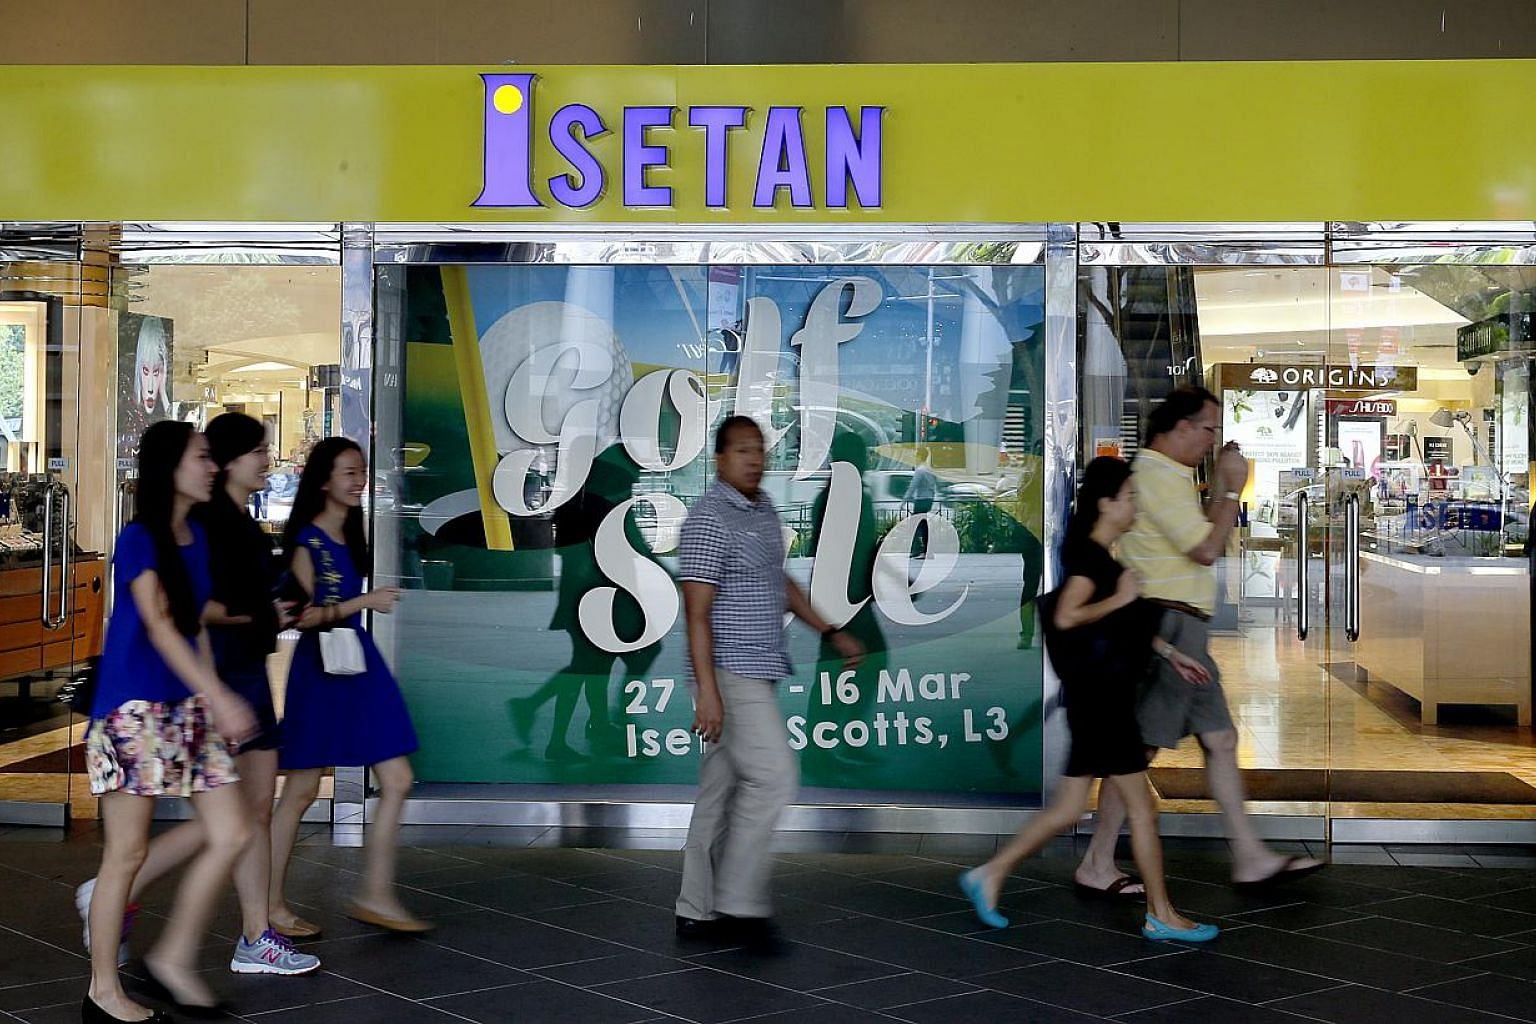 Isetan (Singapore) recorded a net loss of $2.3 million for the first quarter, reversing from net profit of $265,000 a year earlier. -- ST PHOTO: CHEW SENG KIM